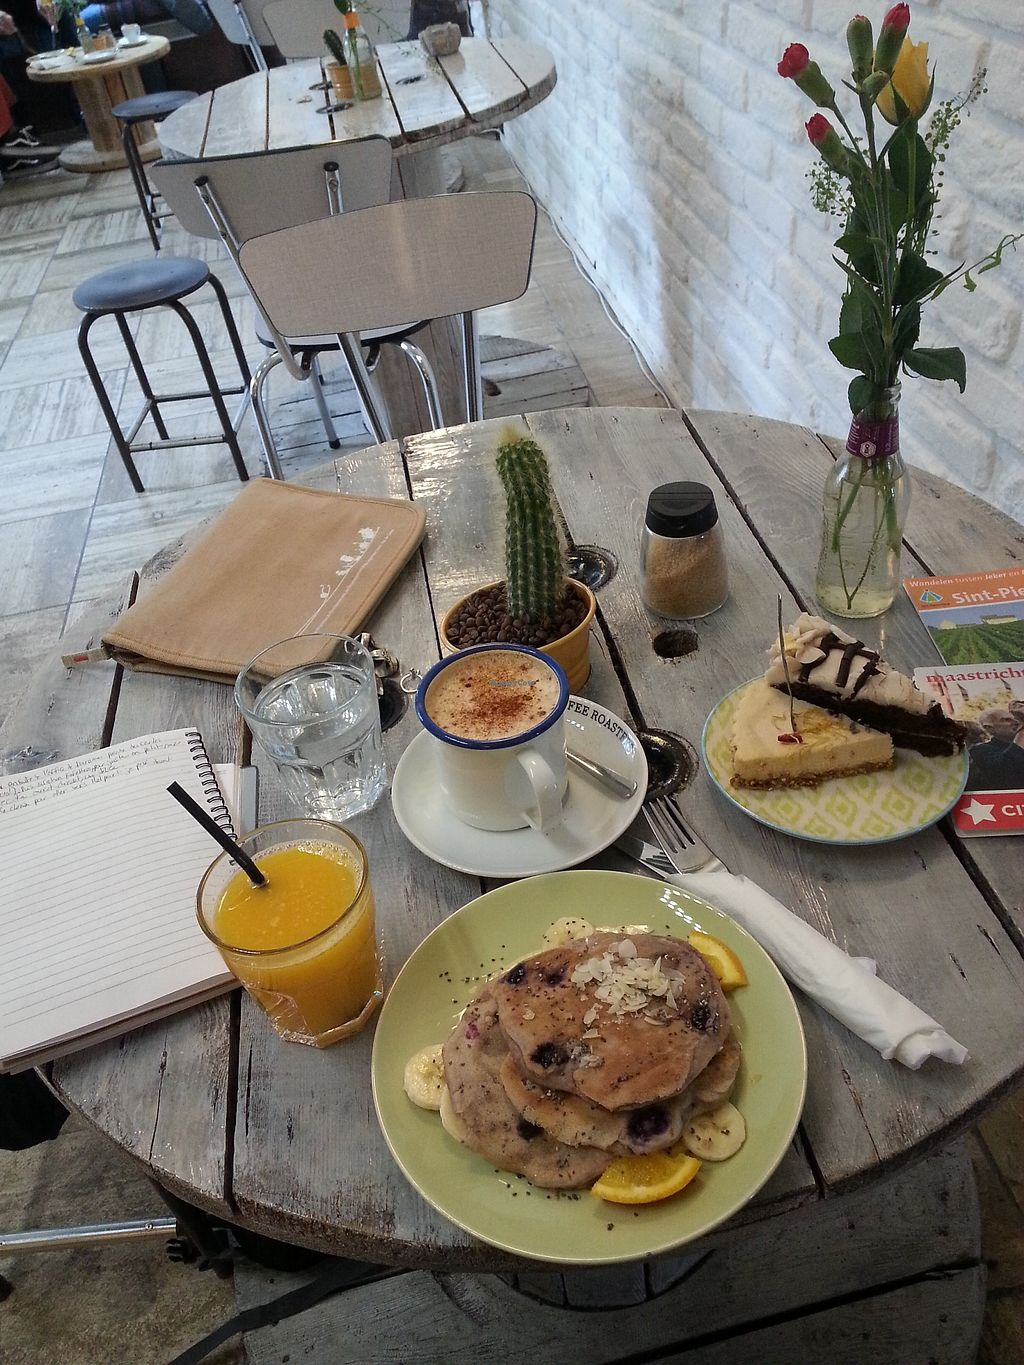 """Photo of KAFETHEA  by <a href=""""/members/profile/ManueEmmaLeTllc"""">ManueEmmaLeTllc</a> <br/>chaï latte with cashew """"milk"""", banana-blueberry pancakes  <br/> August 9, 2017  - <a href='/contact/abuse/image/82368/290854'>Report</a>"""